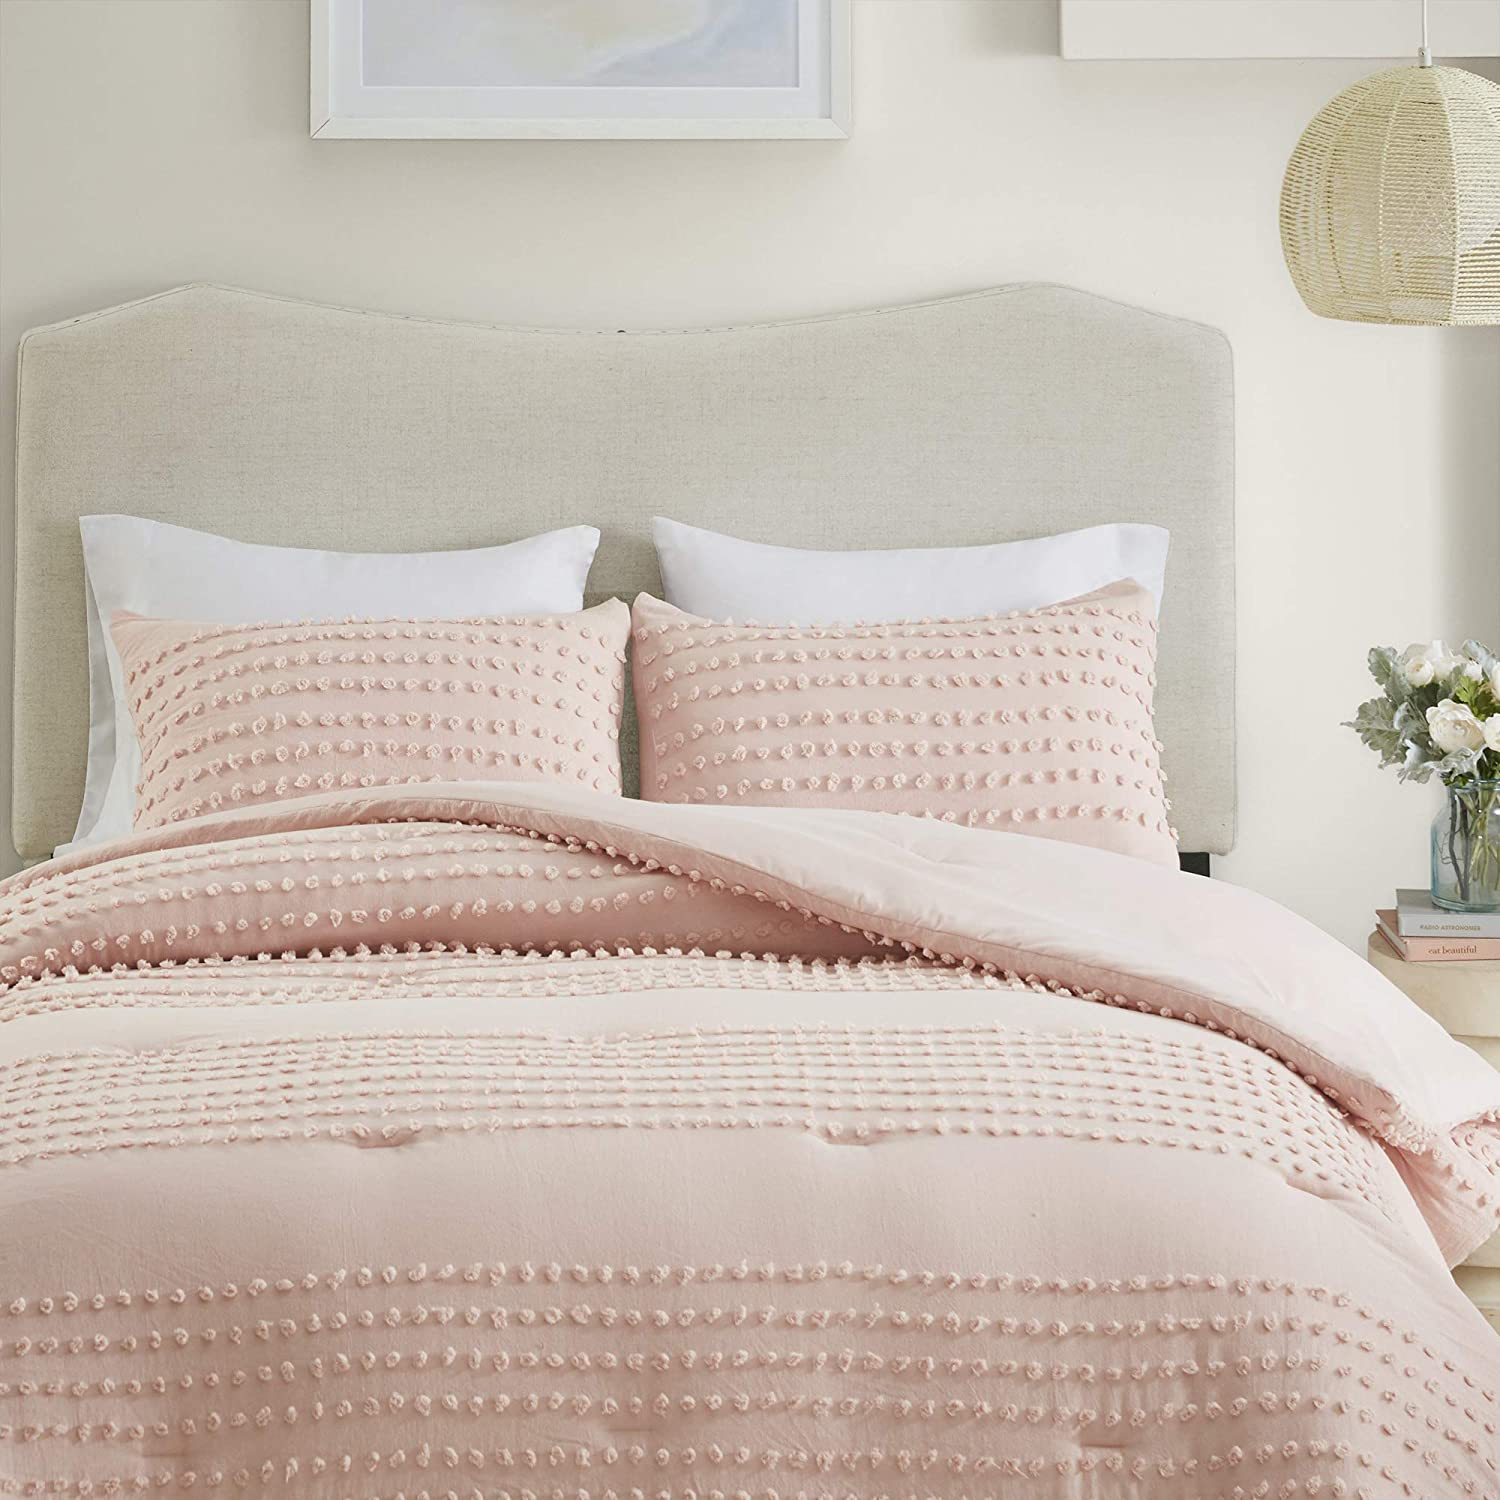 Comfort Spaces Phillips Comforter Reversible 100% Cotton Face Jacquard Tufted Chenille Dots Ultra-Soft Overfilled Down Alternative Hypoallergenic All Season Bedding-Set, Twin/Twin XL, Blush